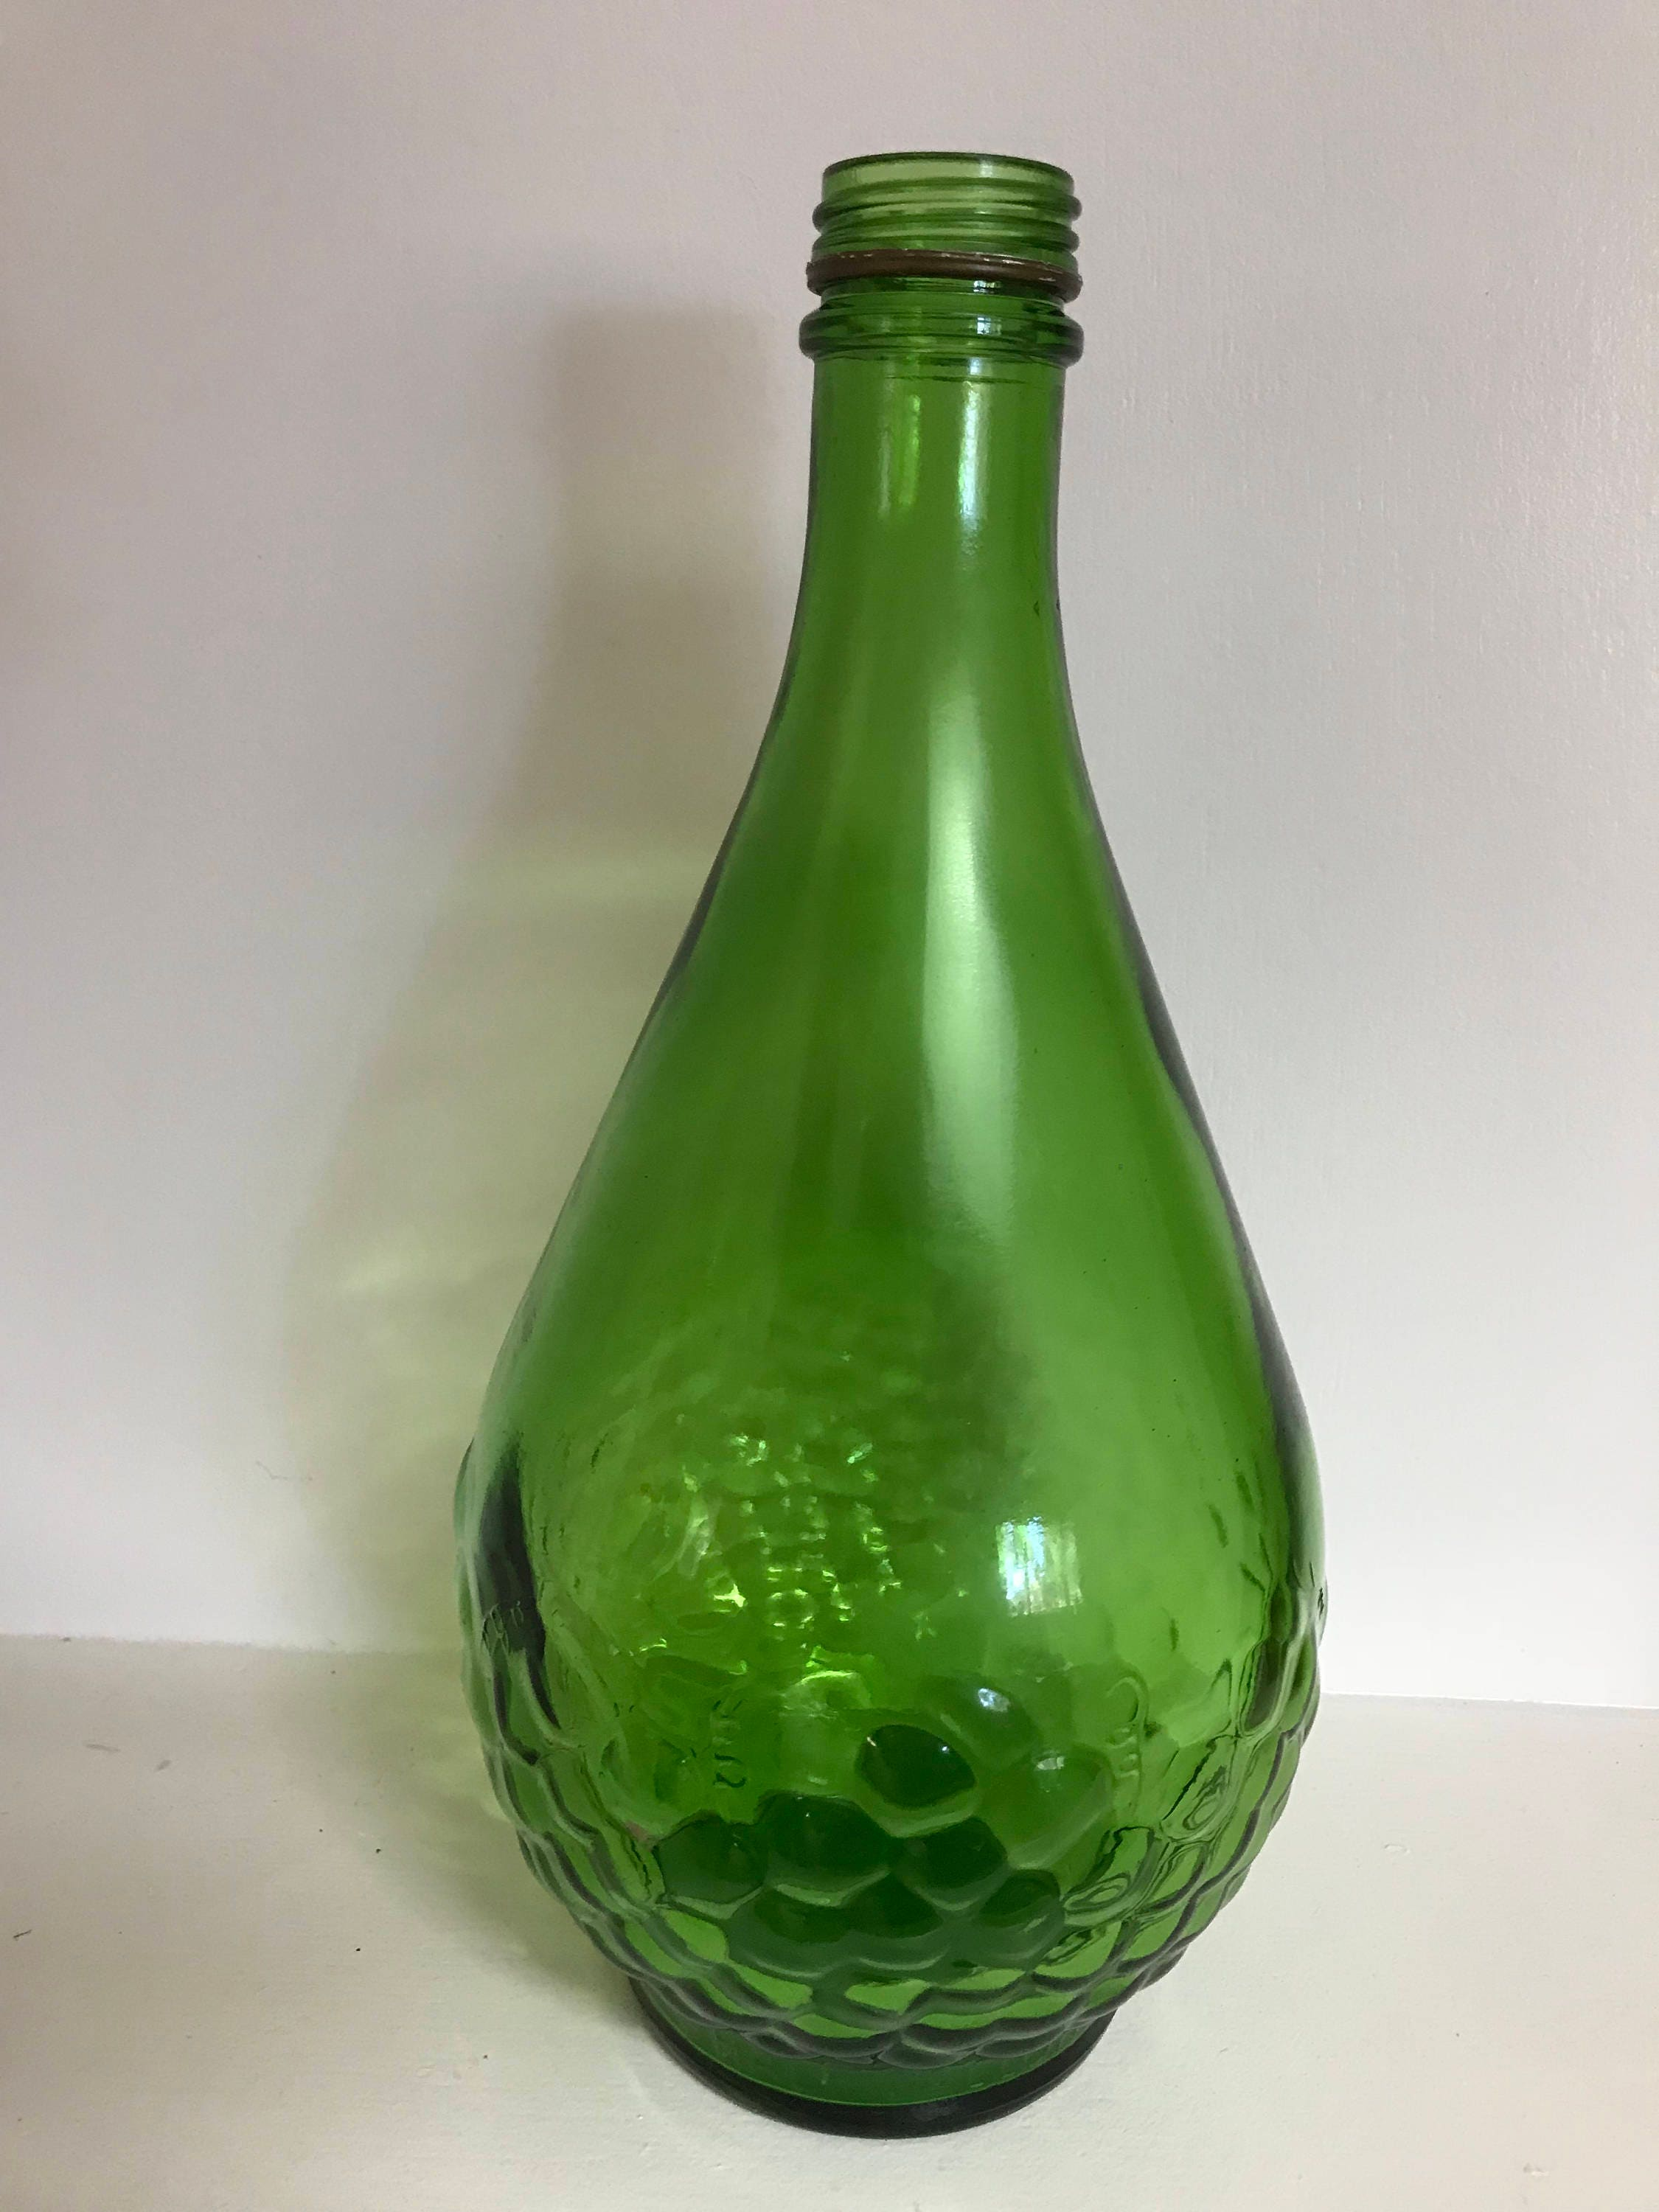 Vintage green glass wine bottle with embossed grapes description vintage green wine bottle reviewsmspy